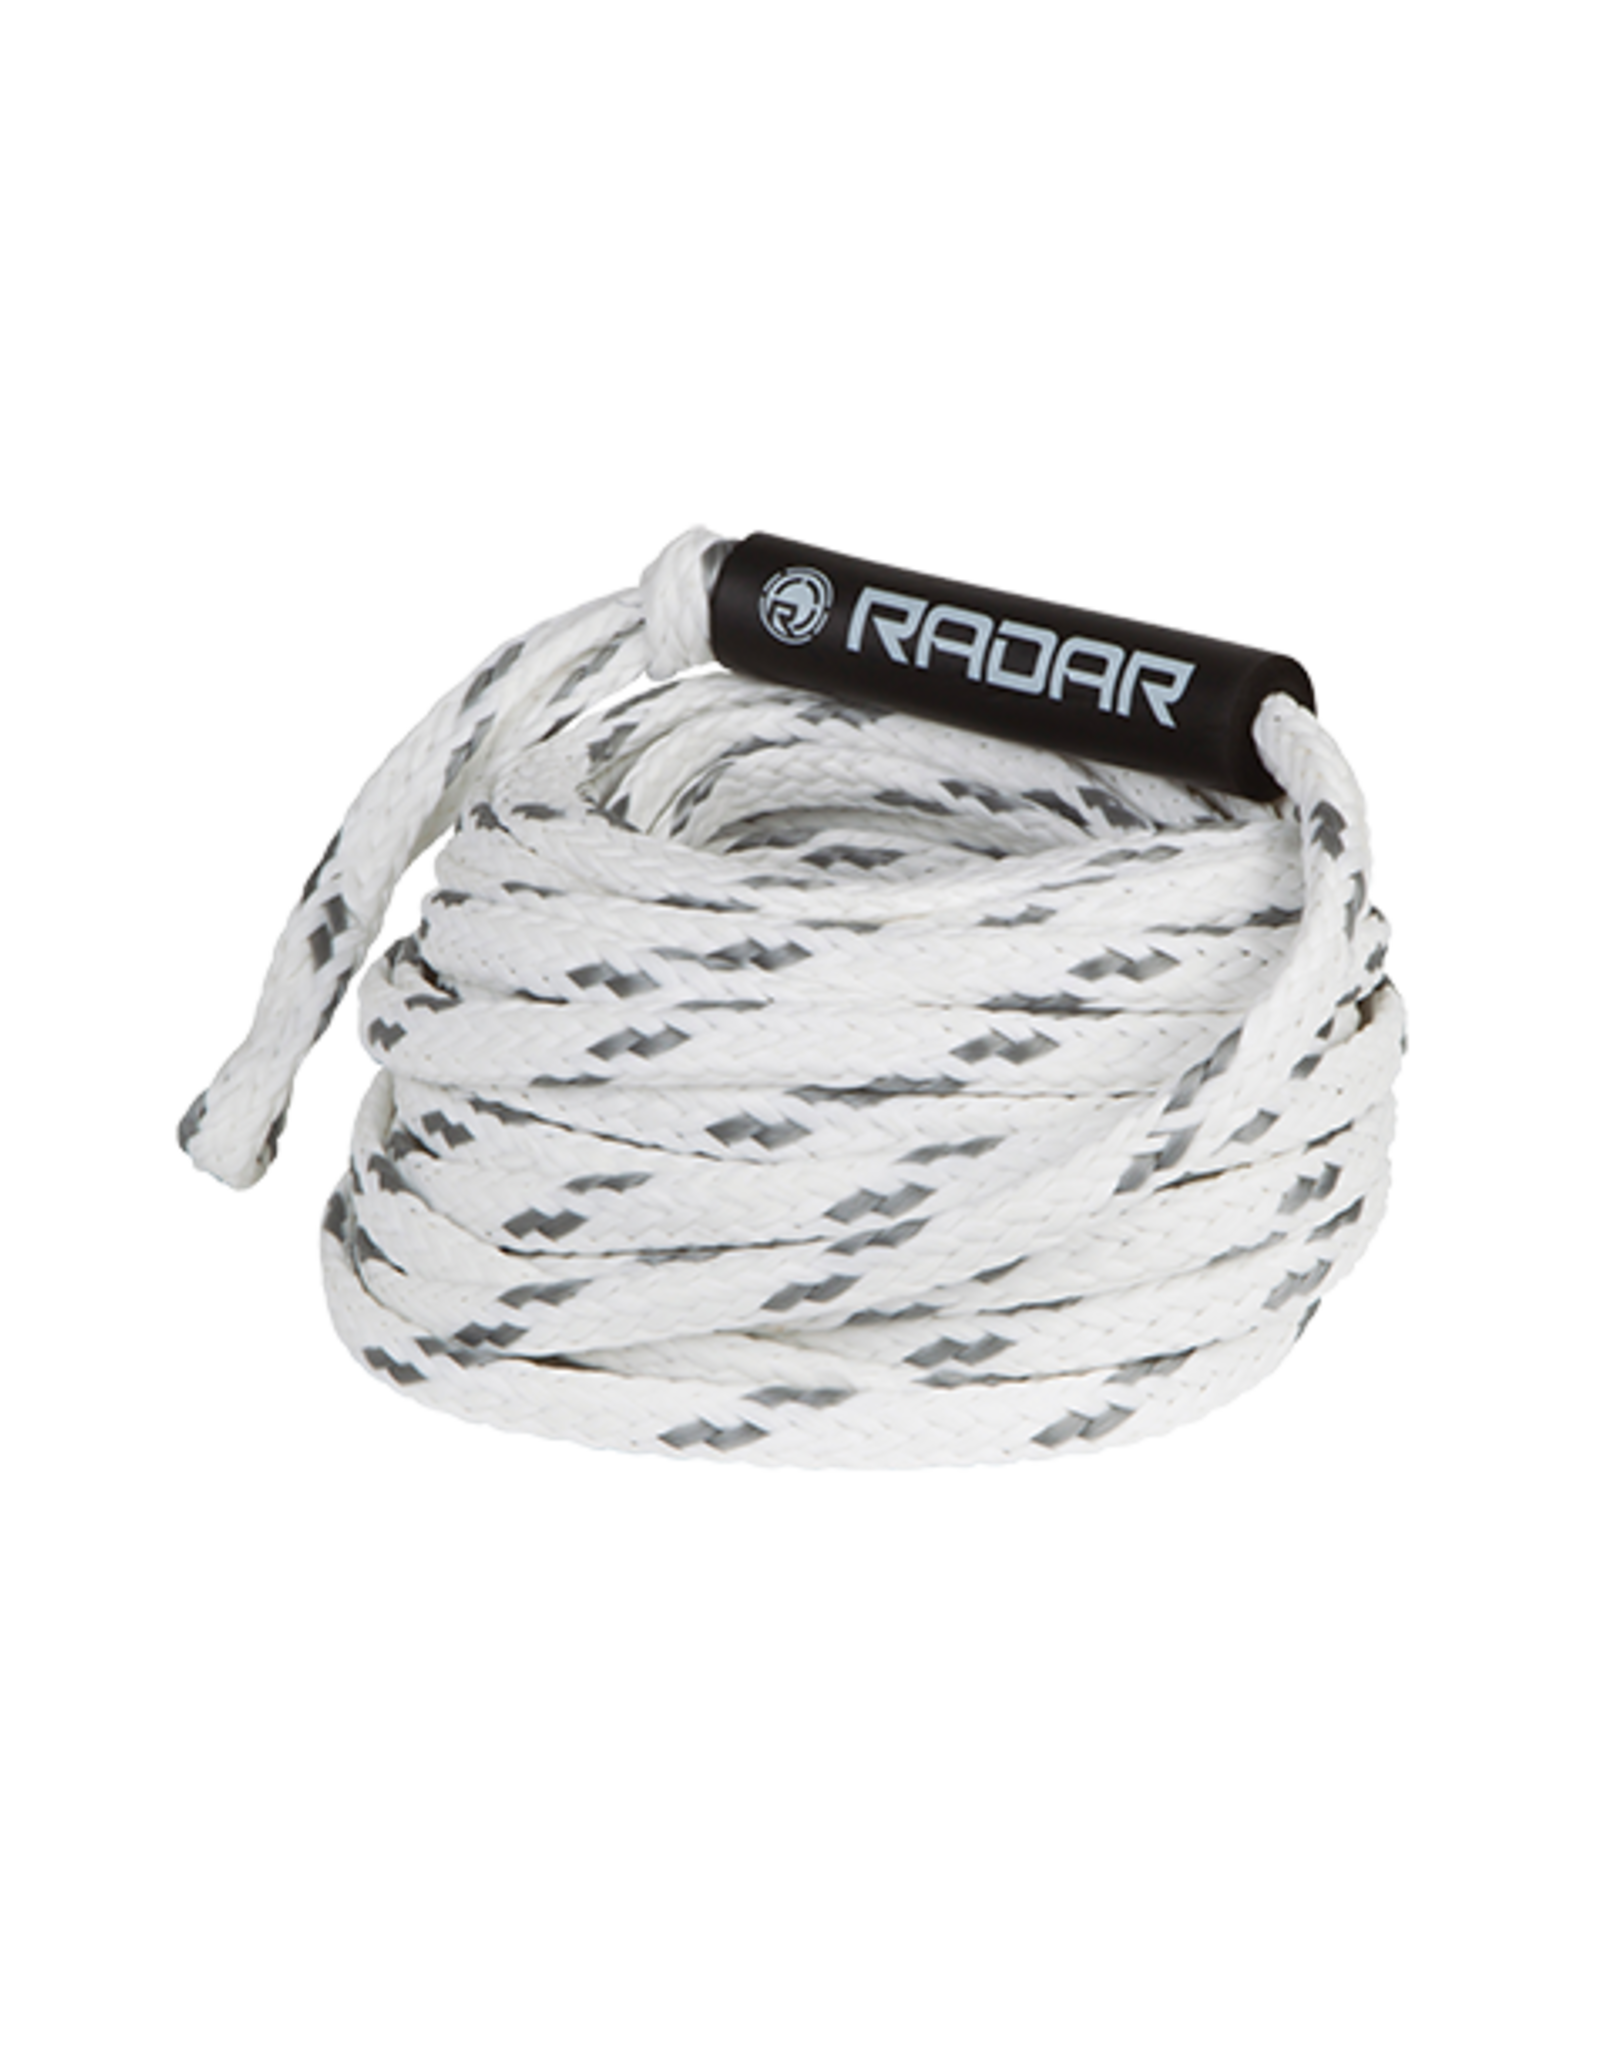 Radar 4.1K 60' Four Person Tube Rope - Assorted Colors